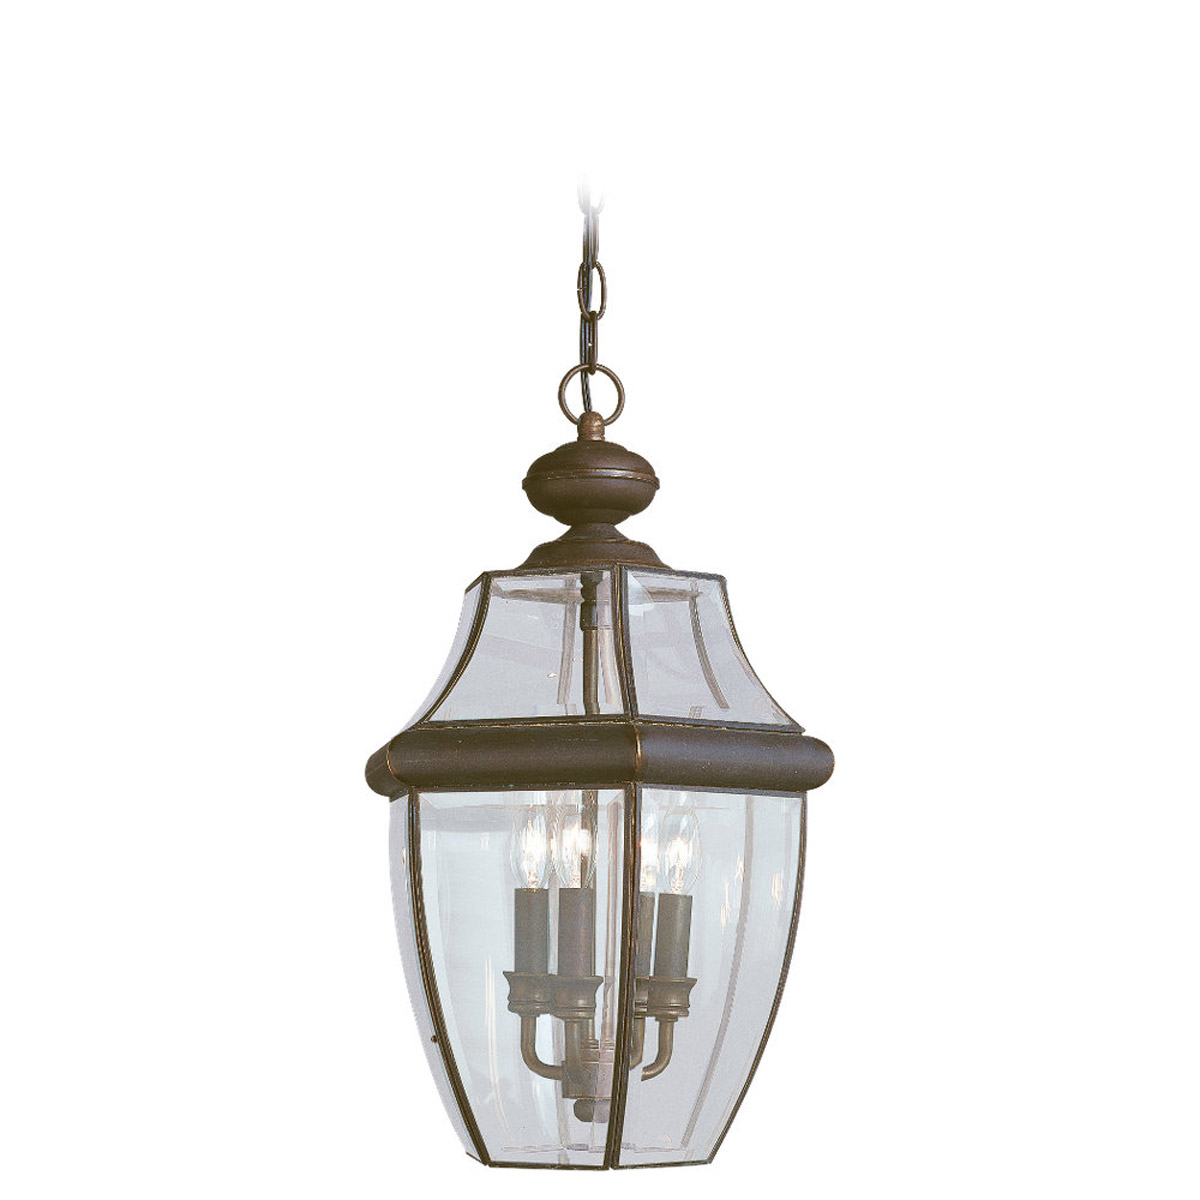 Sea Gull Lighting Lancaster 3 Light Outdoor Pendant in Antique Bronze 6039-71 photo